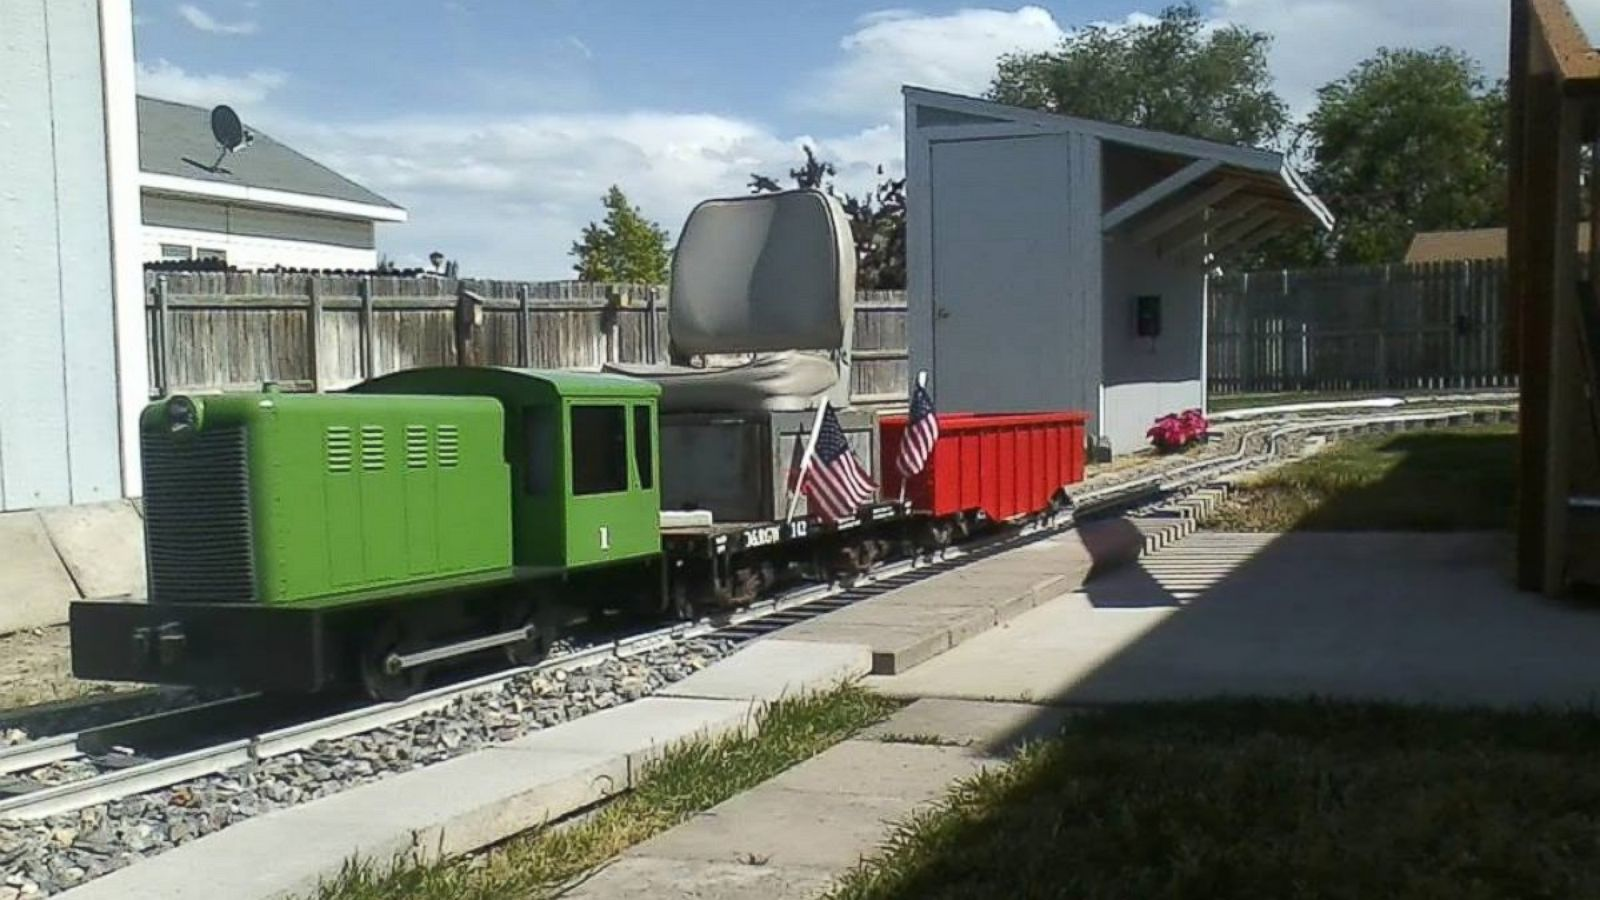 Backyard Railroad Locomotives man builds 400-foot railroad in backyard because he 'got a wild bug